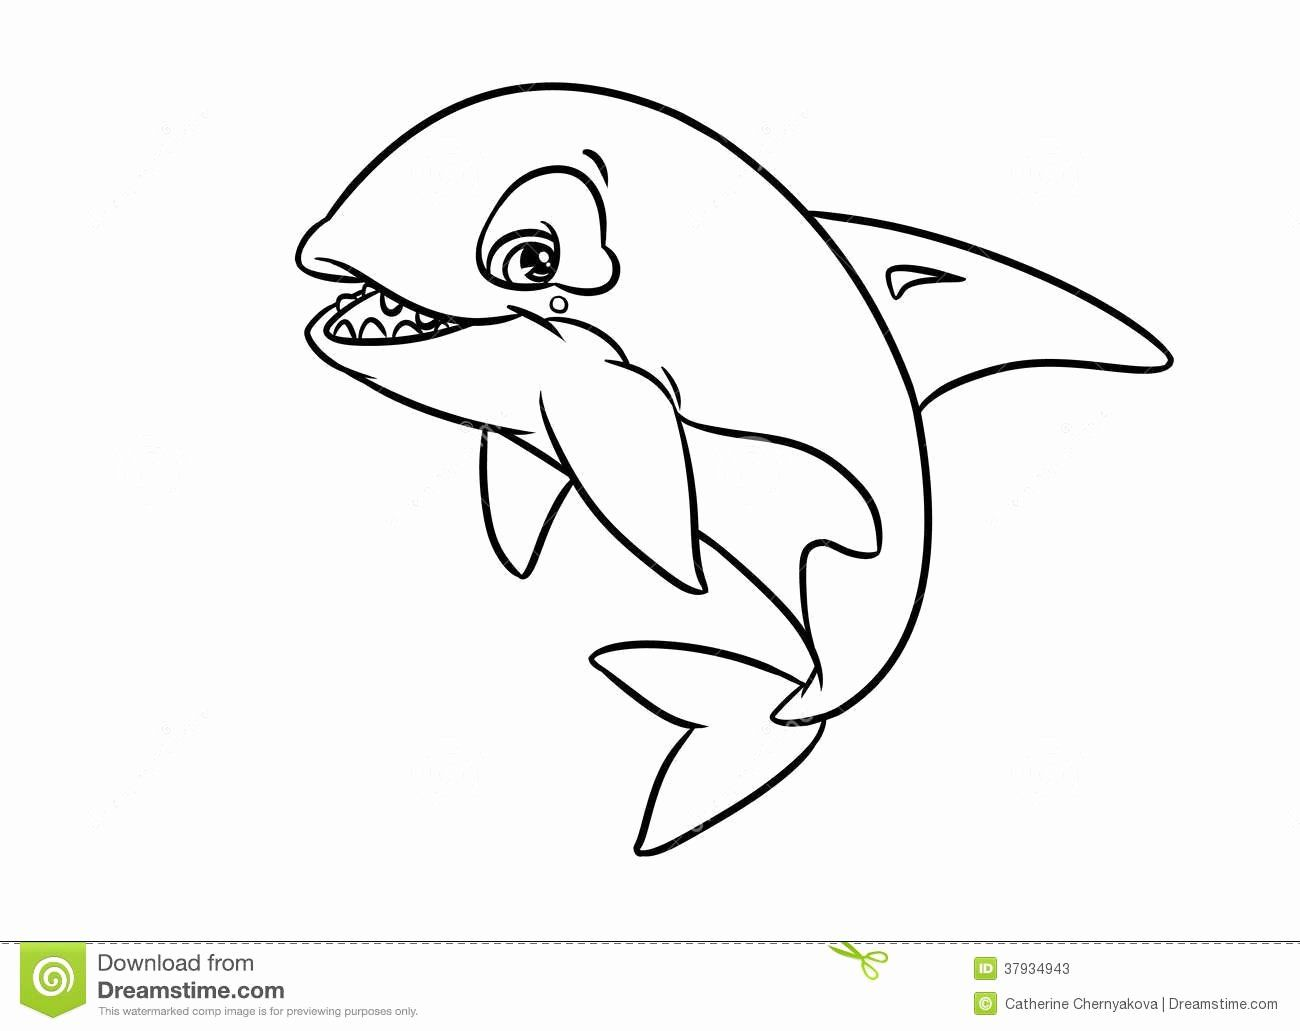 24 Orca Whale Coloring Page In